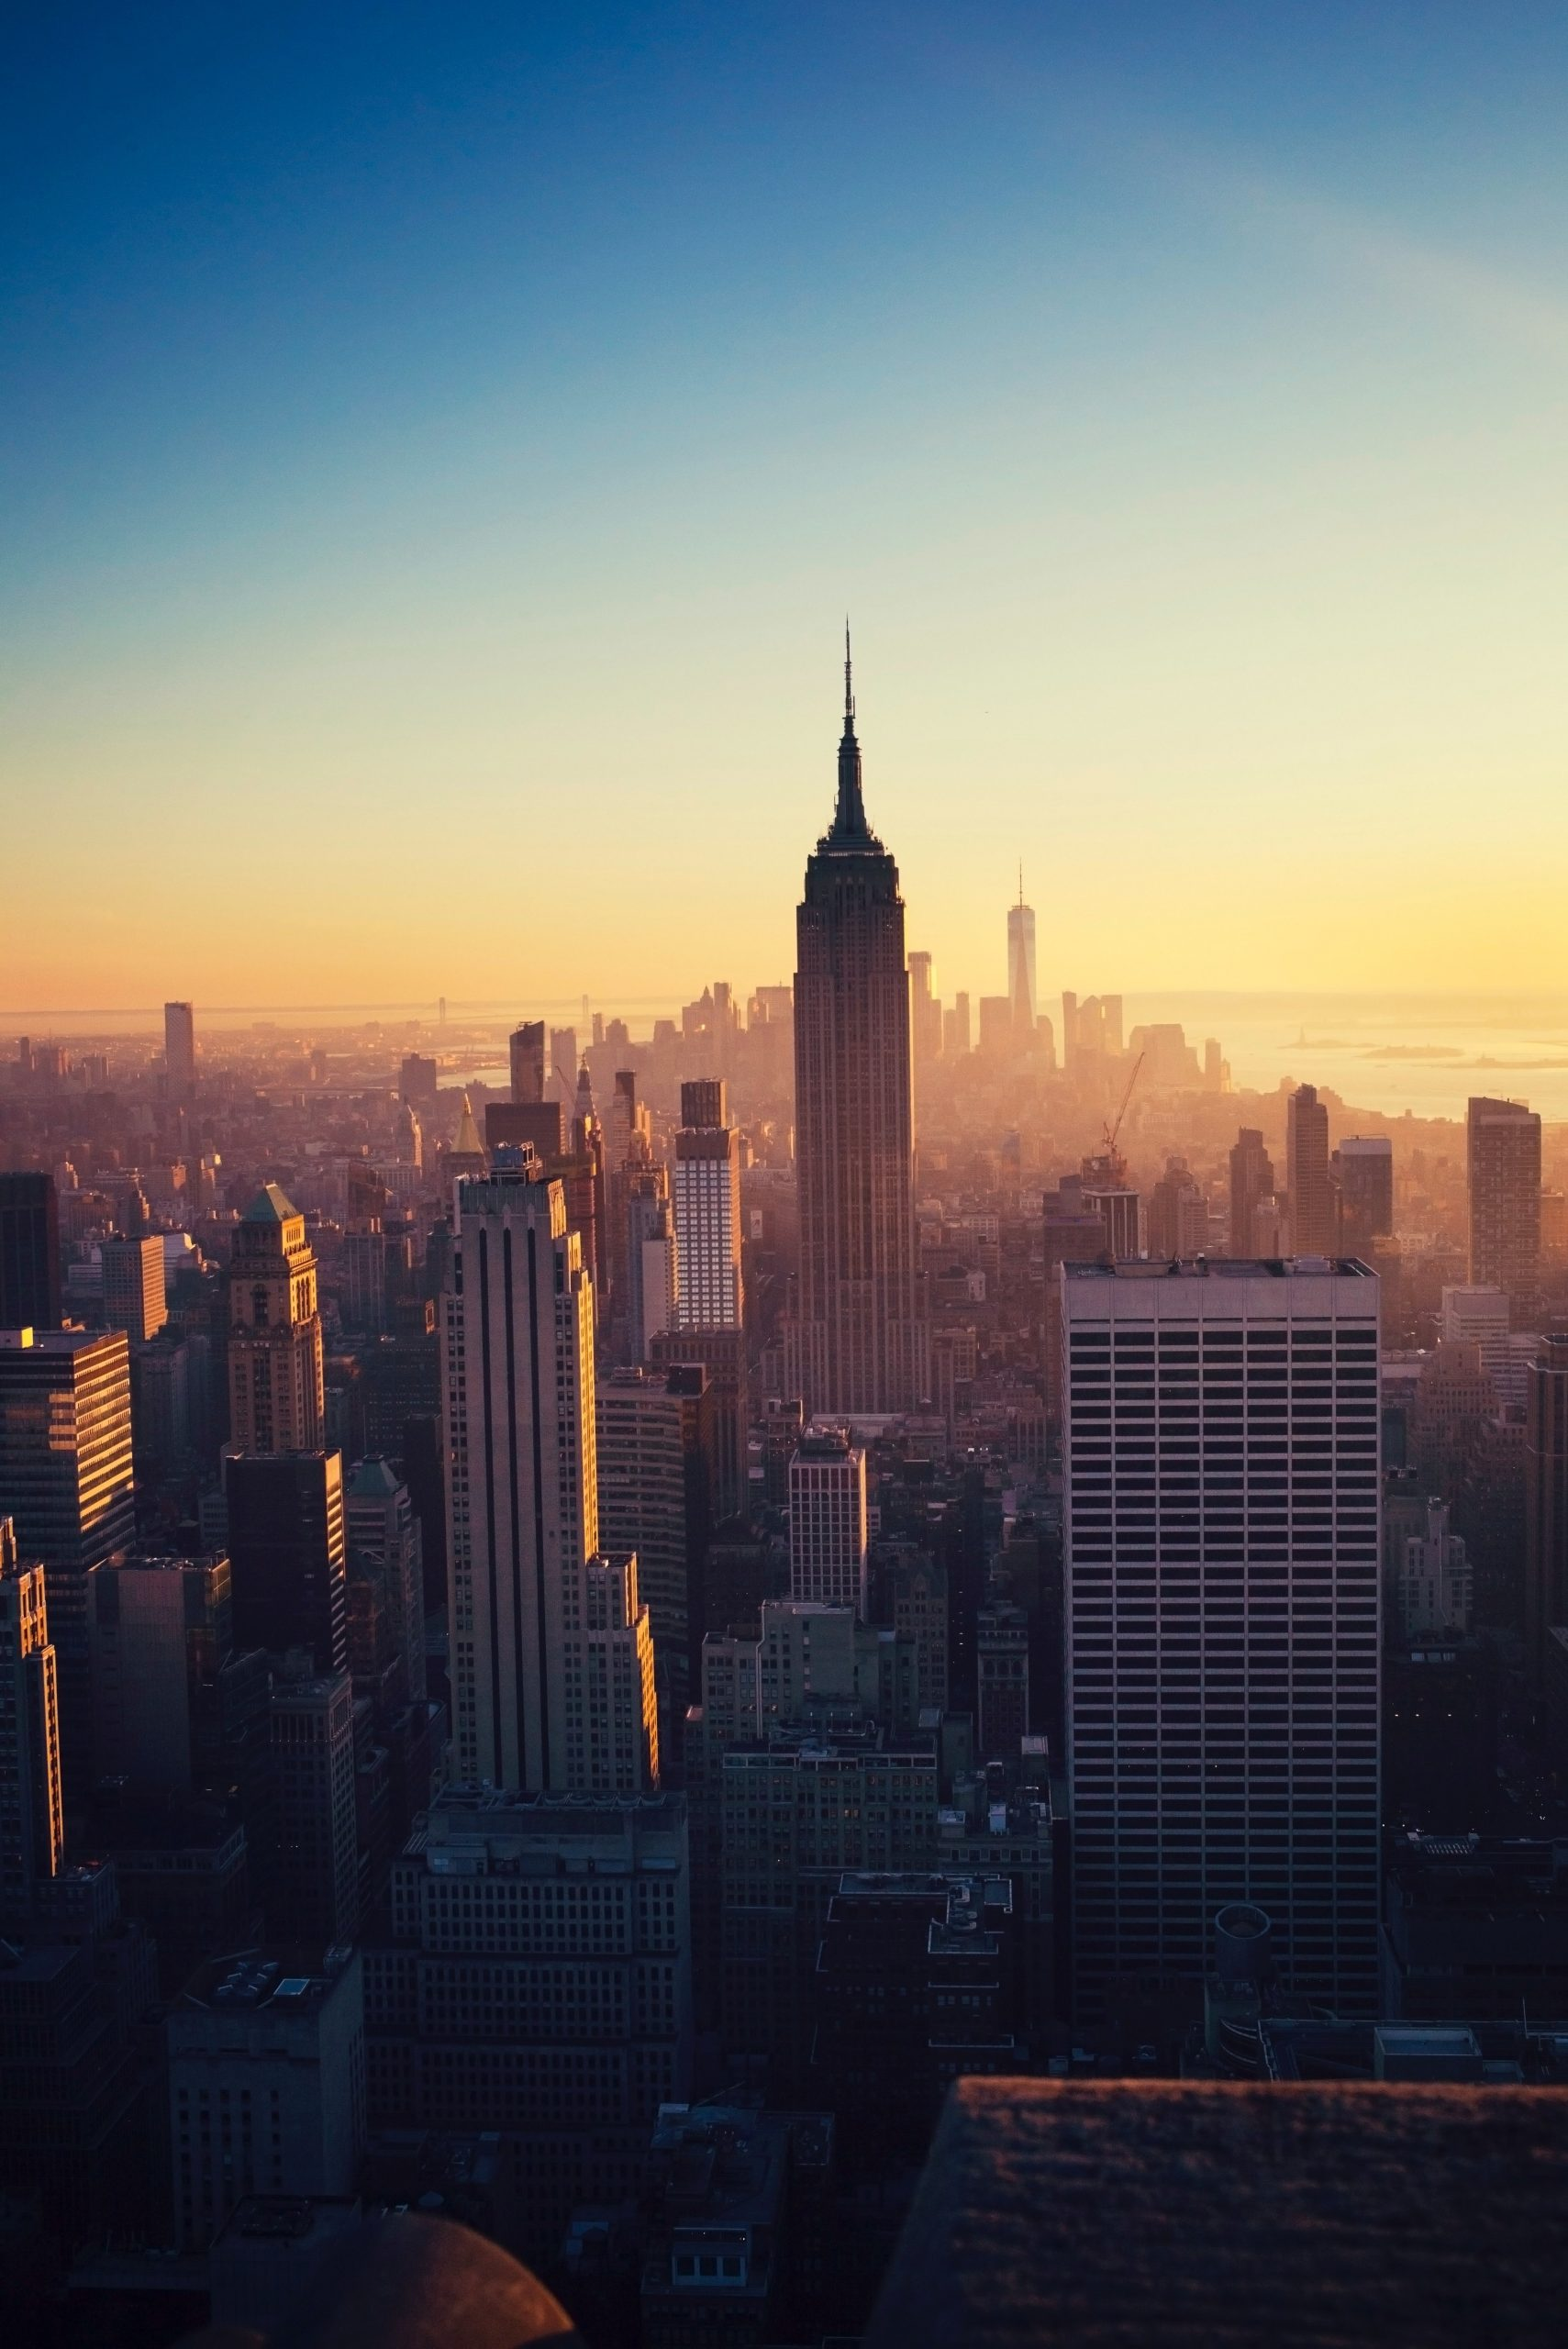 A city skyline during sunset in NYC.